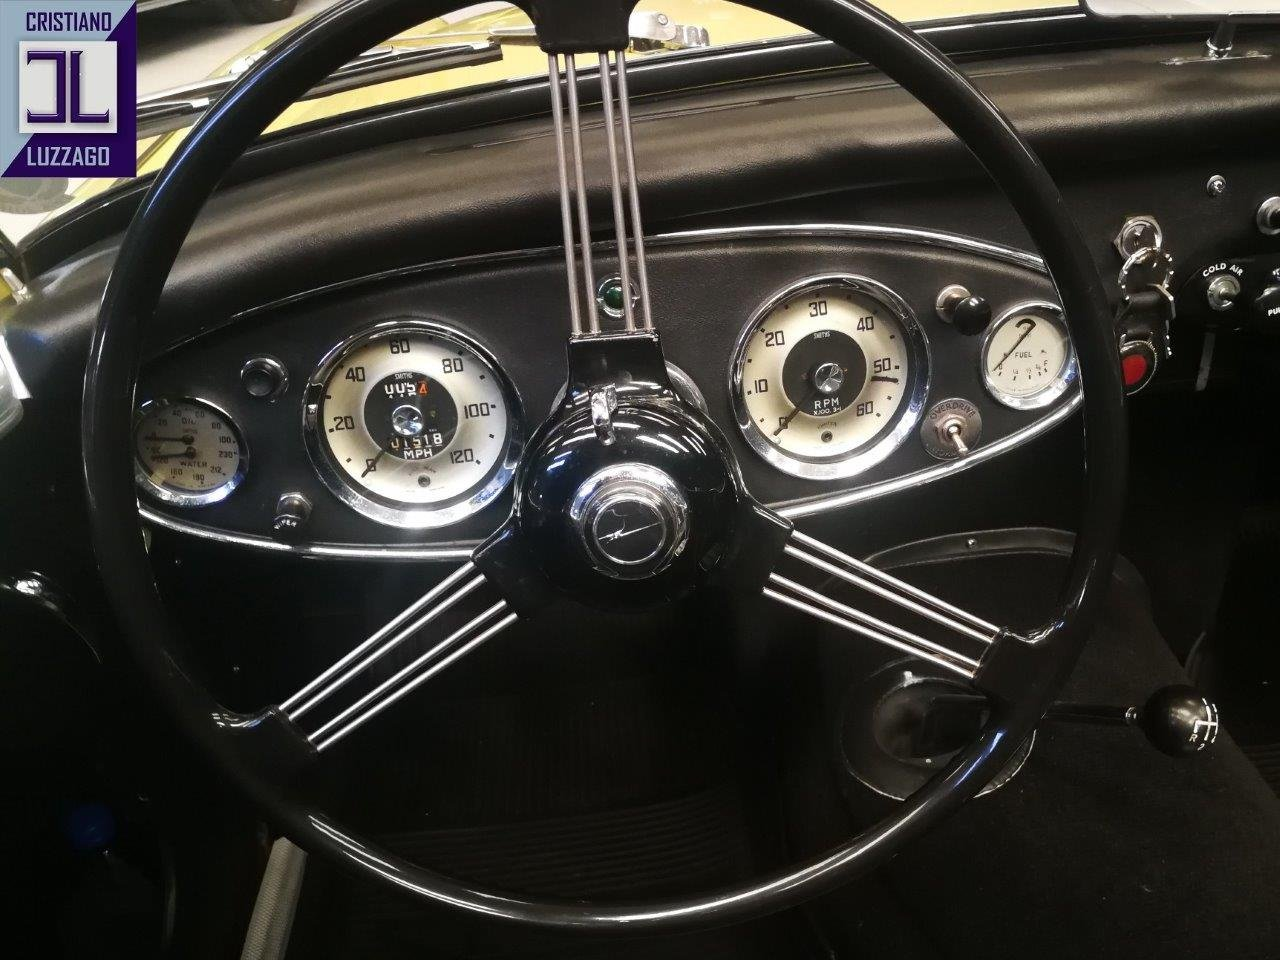 1960 AUSTIN HEALEY 3000 MK1 4 SEATER For Sale (picture 5 of 6)